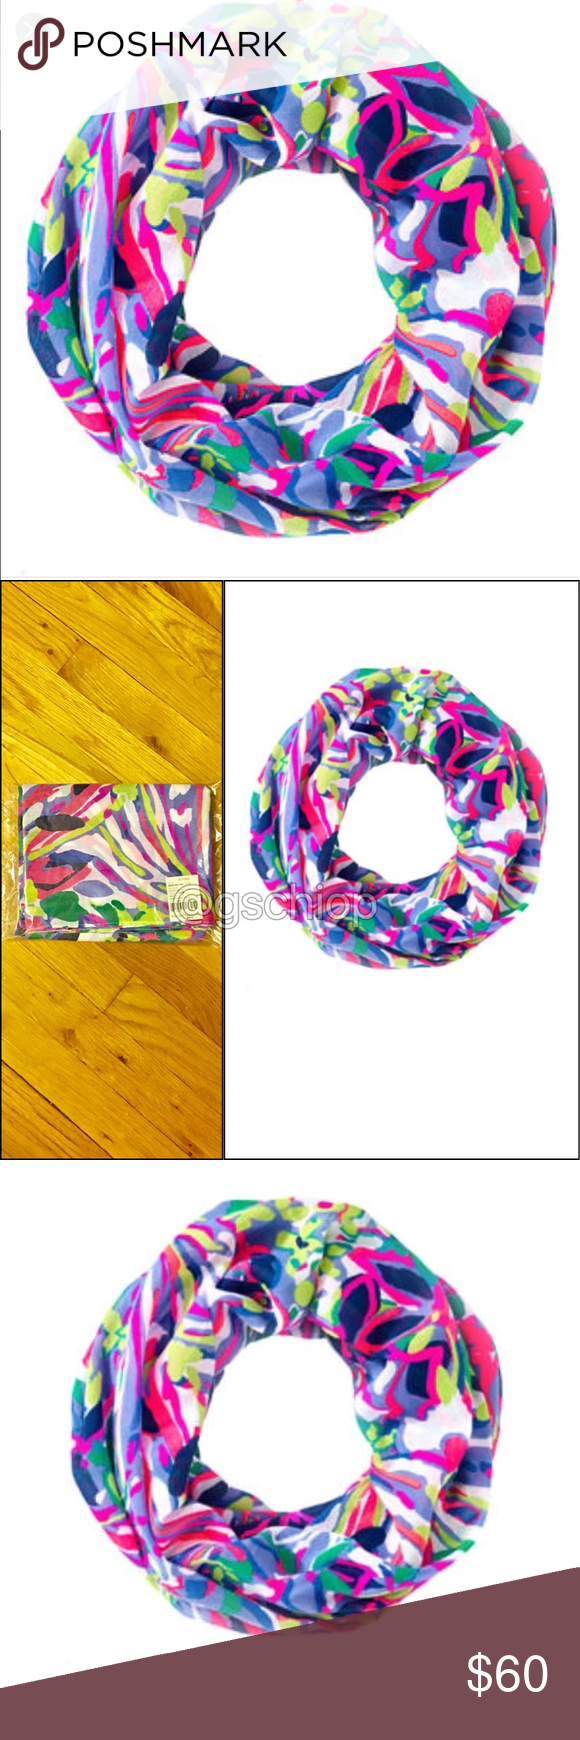 Lilly Pulitzer Infinity Scarf Lilly Pulitzer Infinity Scarf. Havin a blast.New in original package, exactly as seen Lilly Pulitzer Accessories Scarves & Wraps